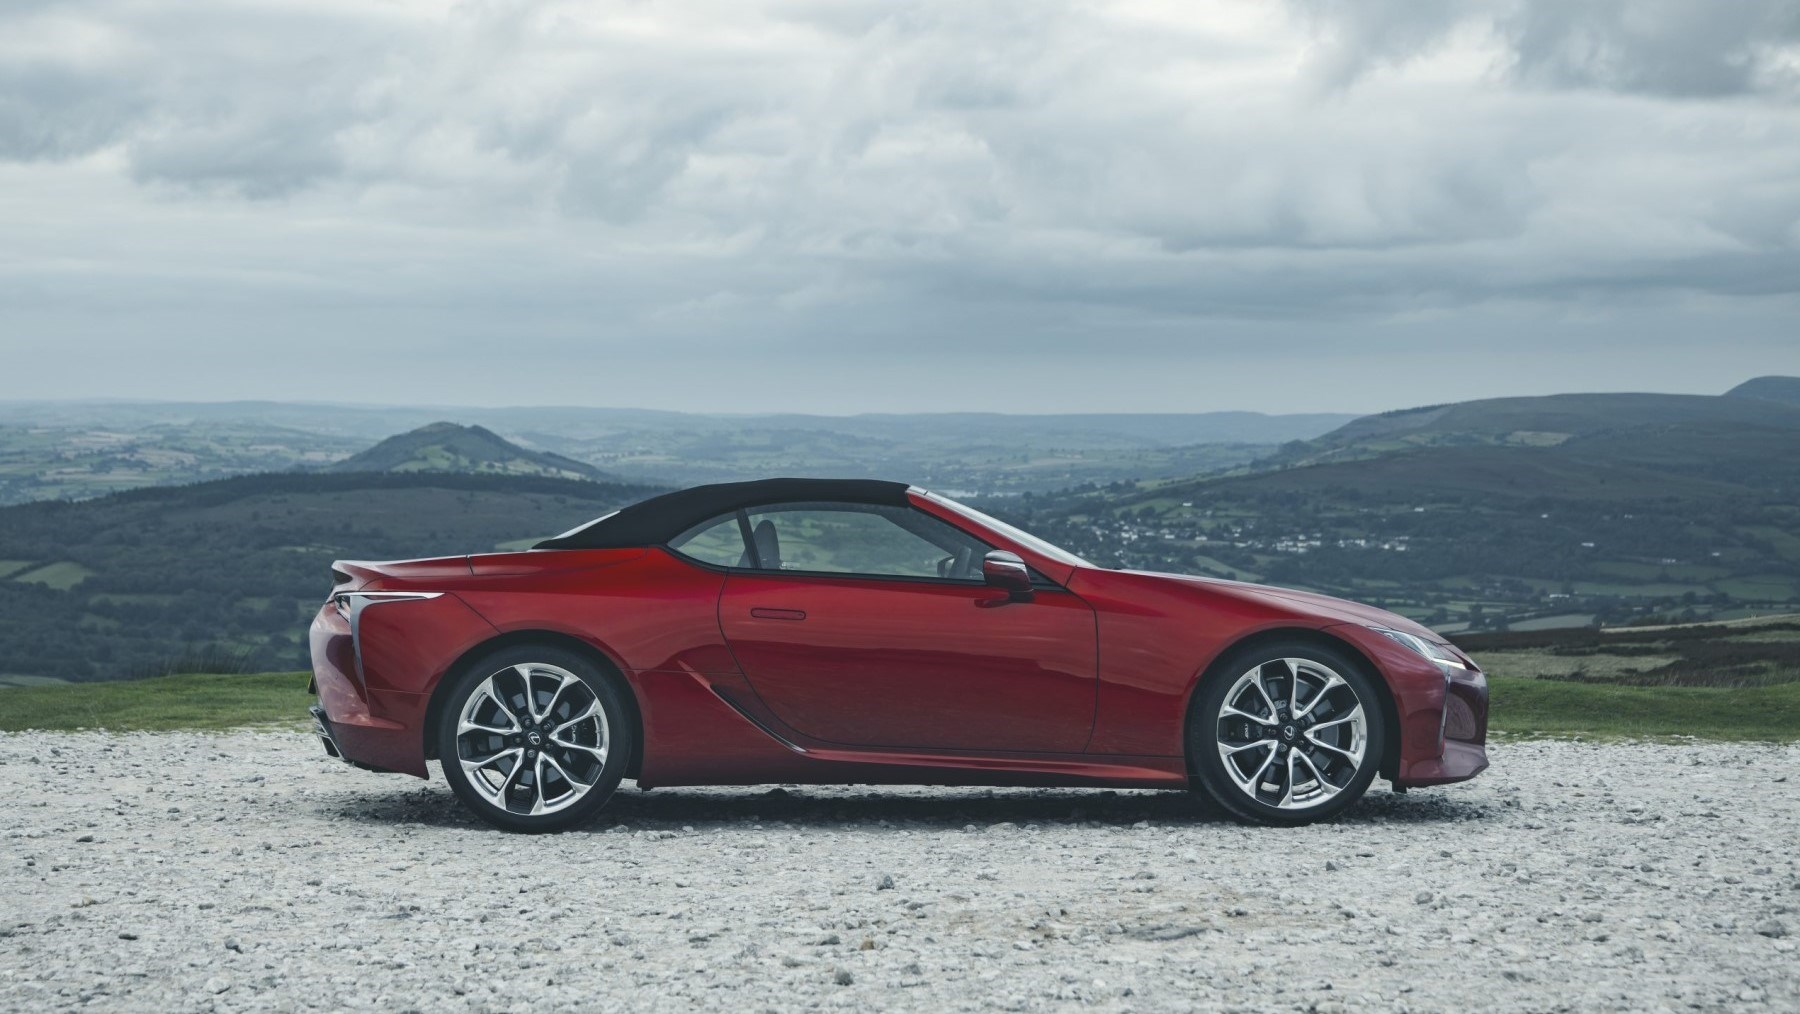 2020 Lexus LC Convertible - side, roof up